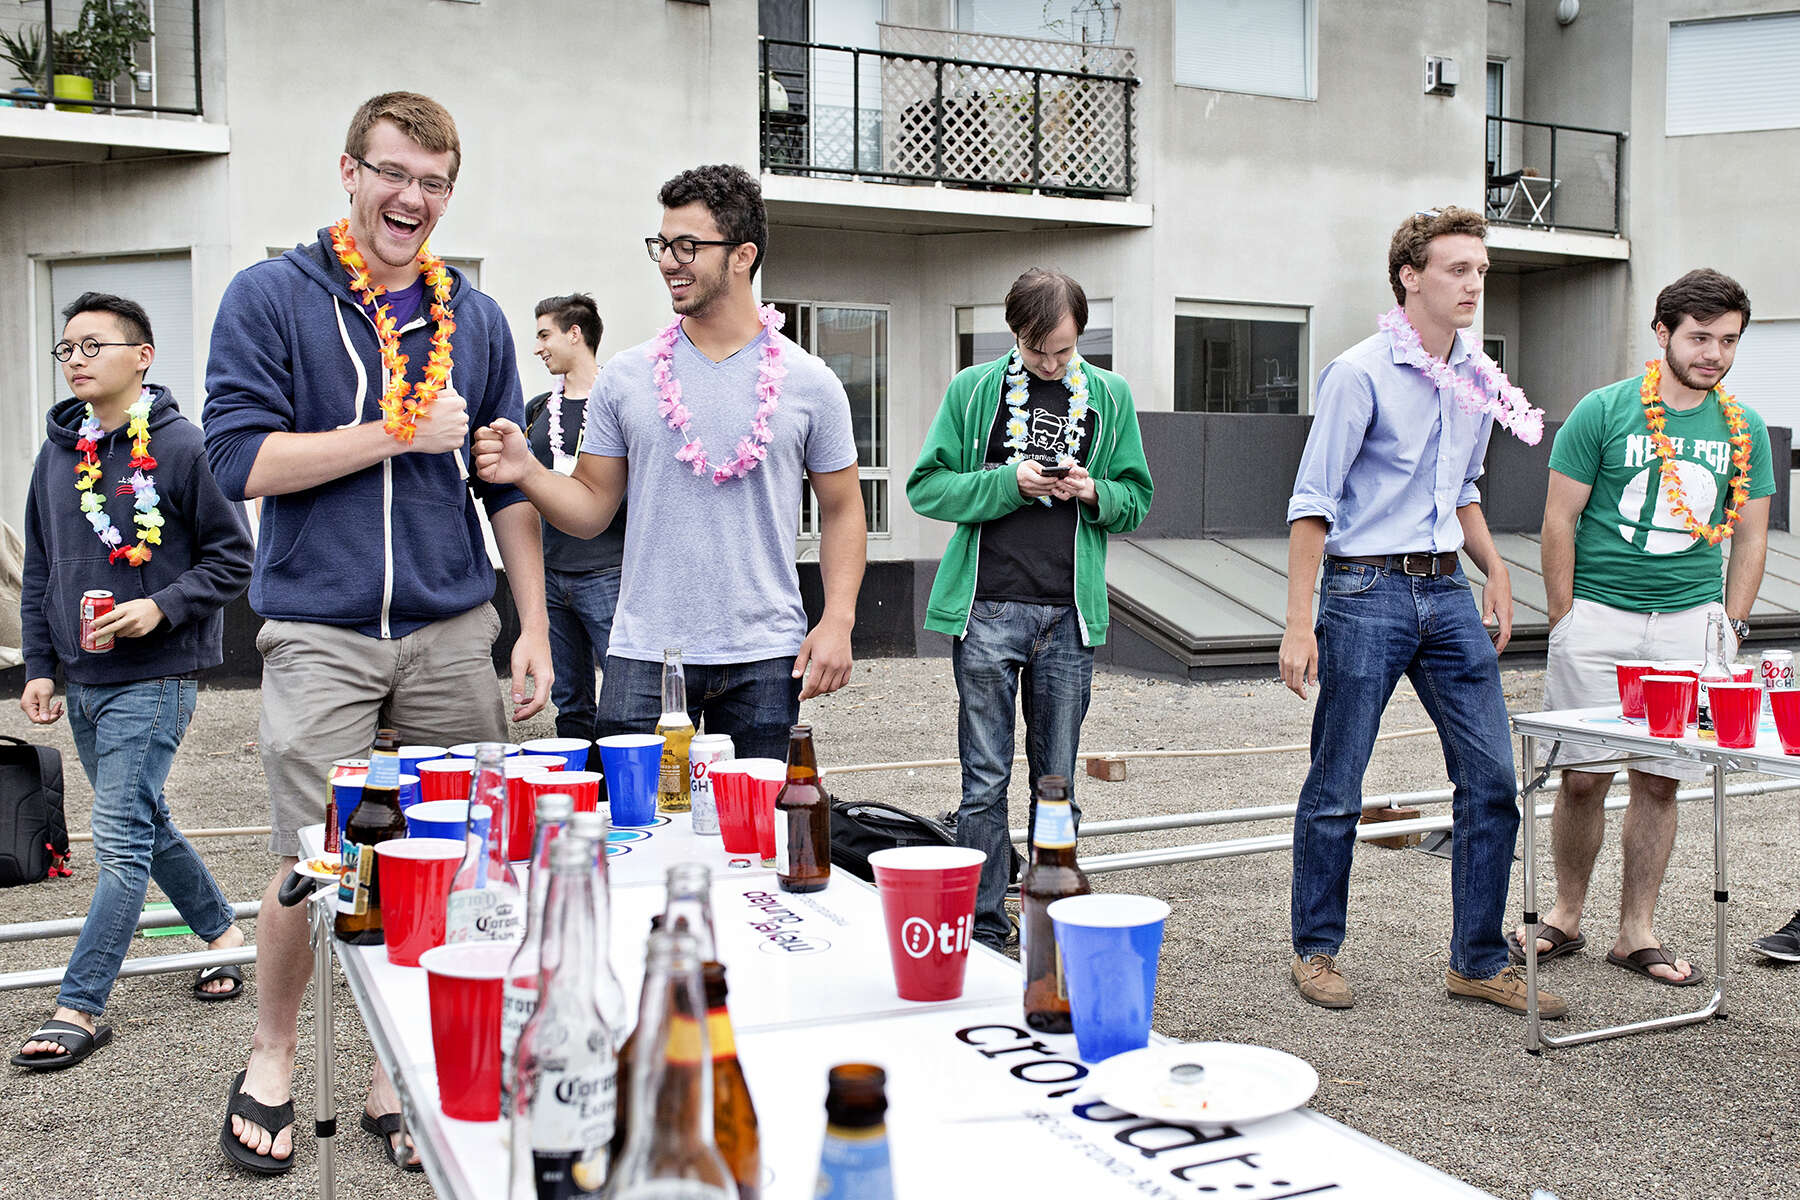 Allen Kleiner (left) and Jonathan Osacky congratulate each other while playing beer pong during a happy hour party at the office of the now defunct crowdfunding start-up Tilt in July 2015. The happy hour was a fundraiser for the organization Girls Who Code and guests were asked to make a donation through the company's website to gain entrance to the event.